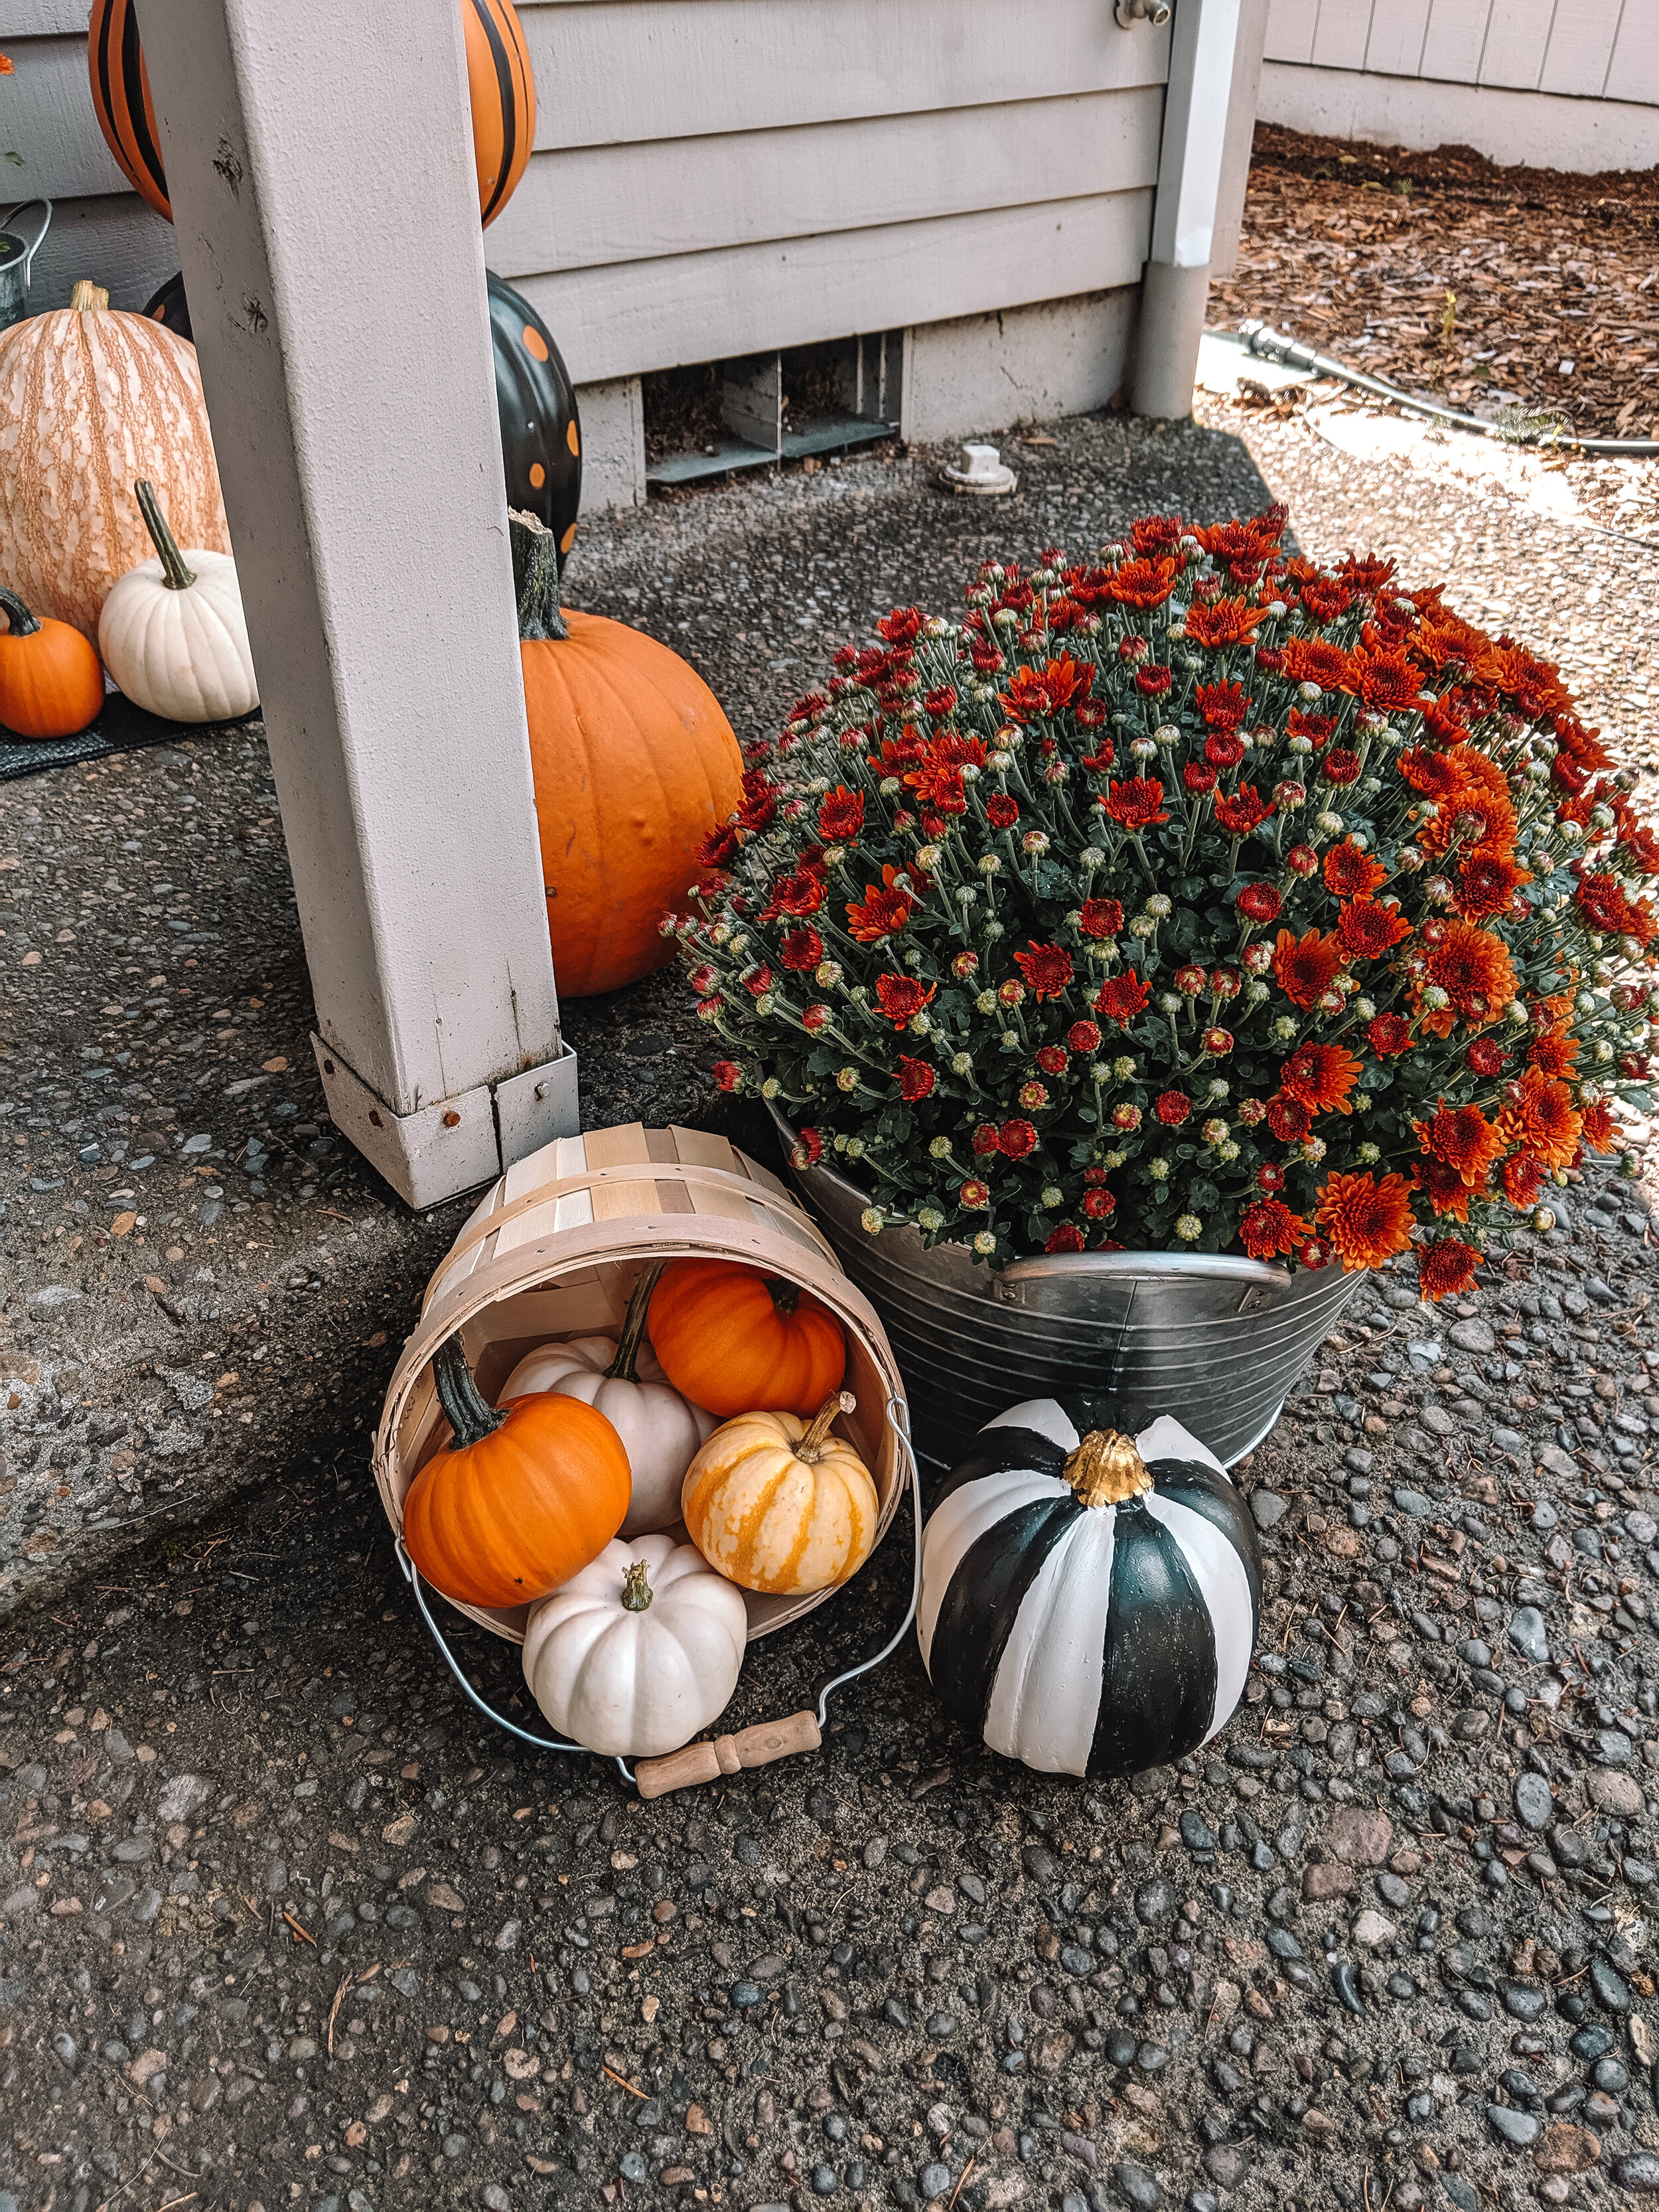 Front Porch Fall Decor - Mums in a Bucket